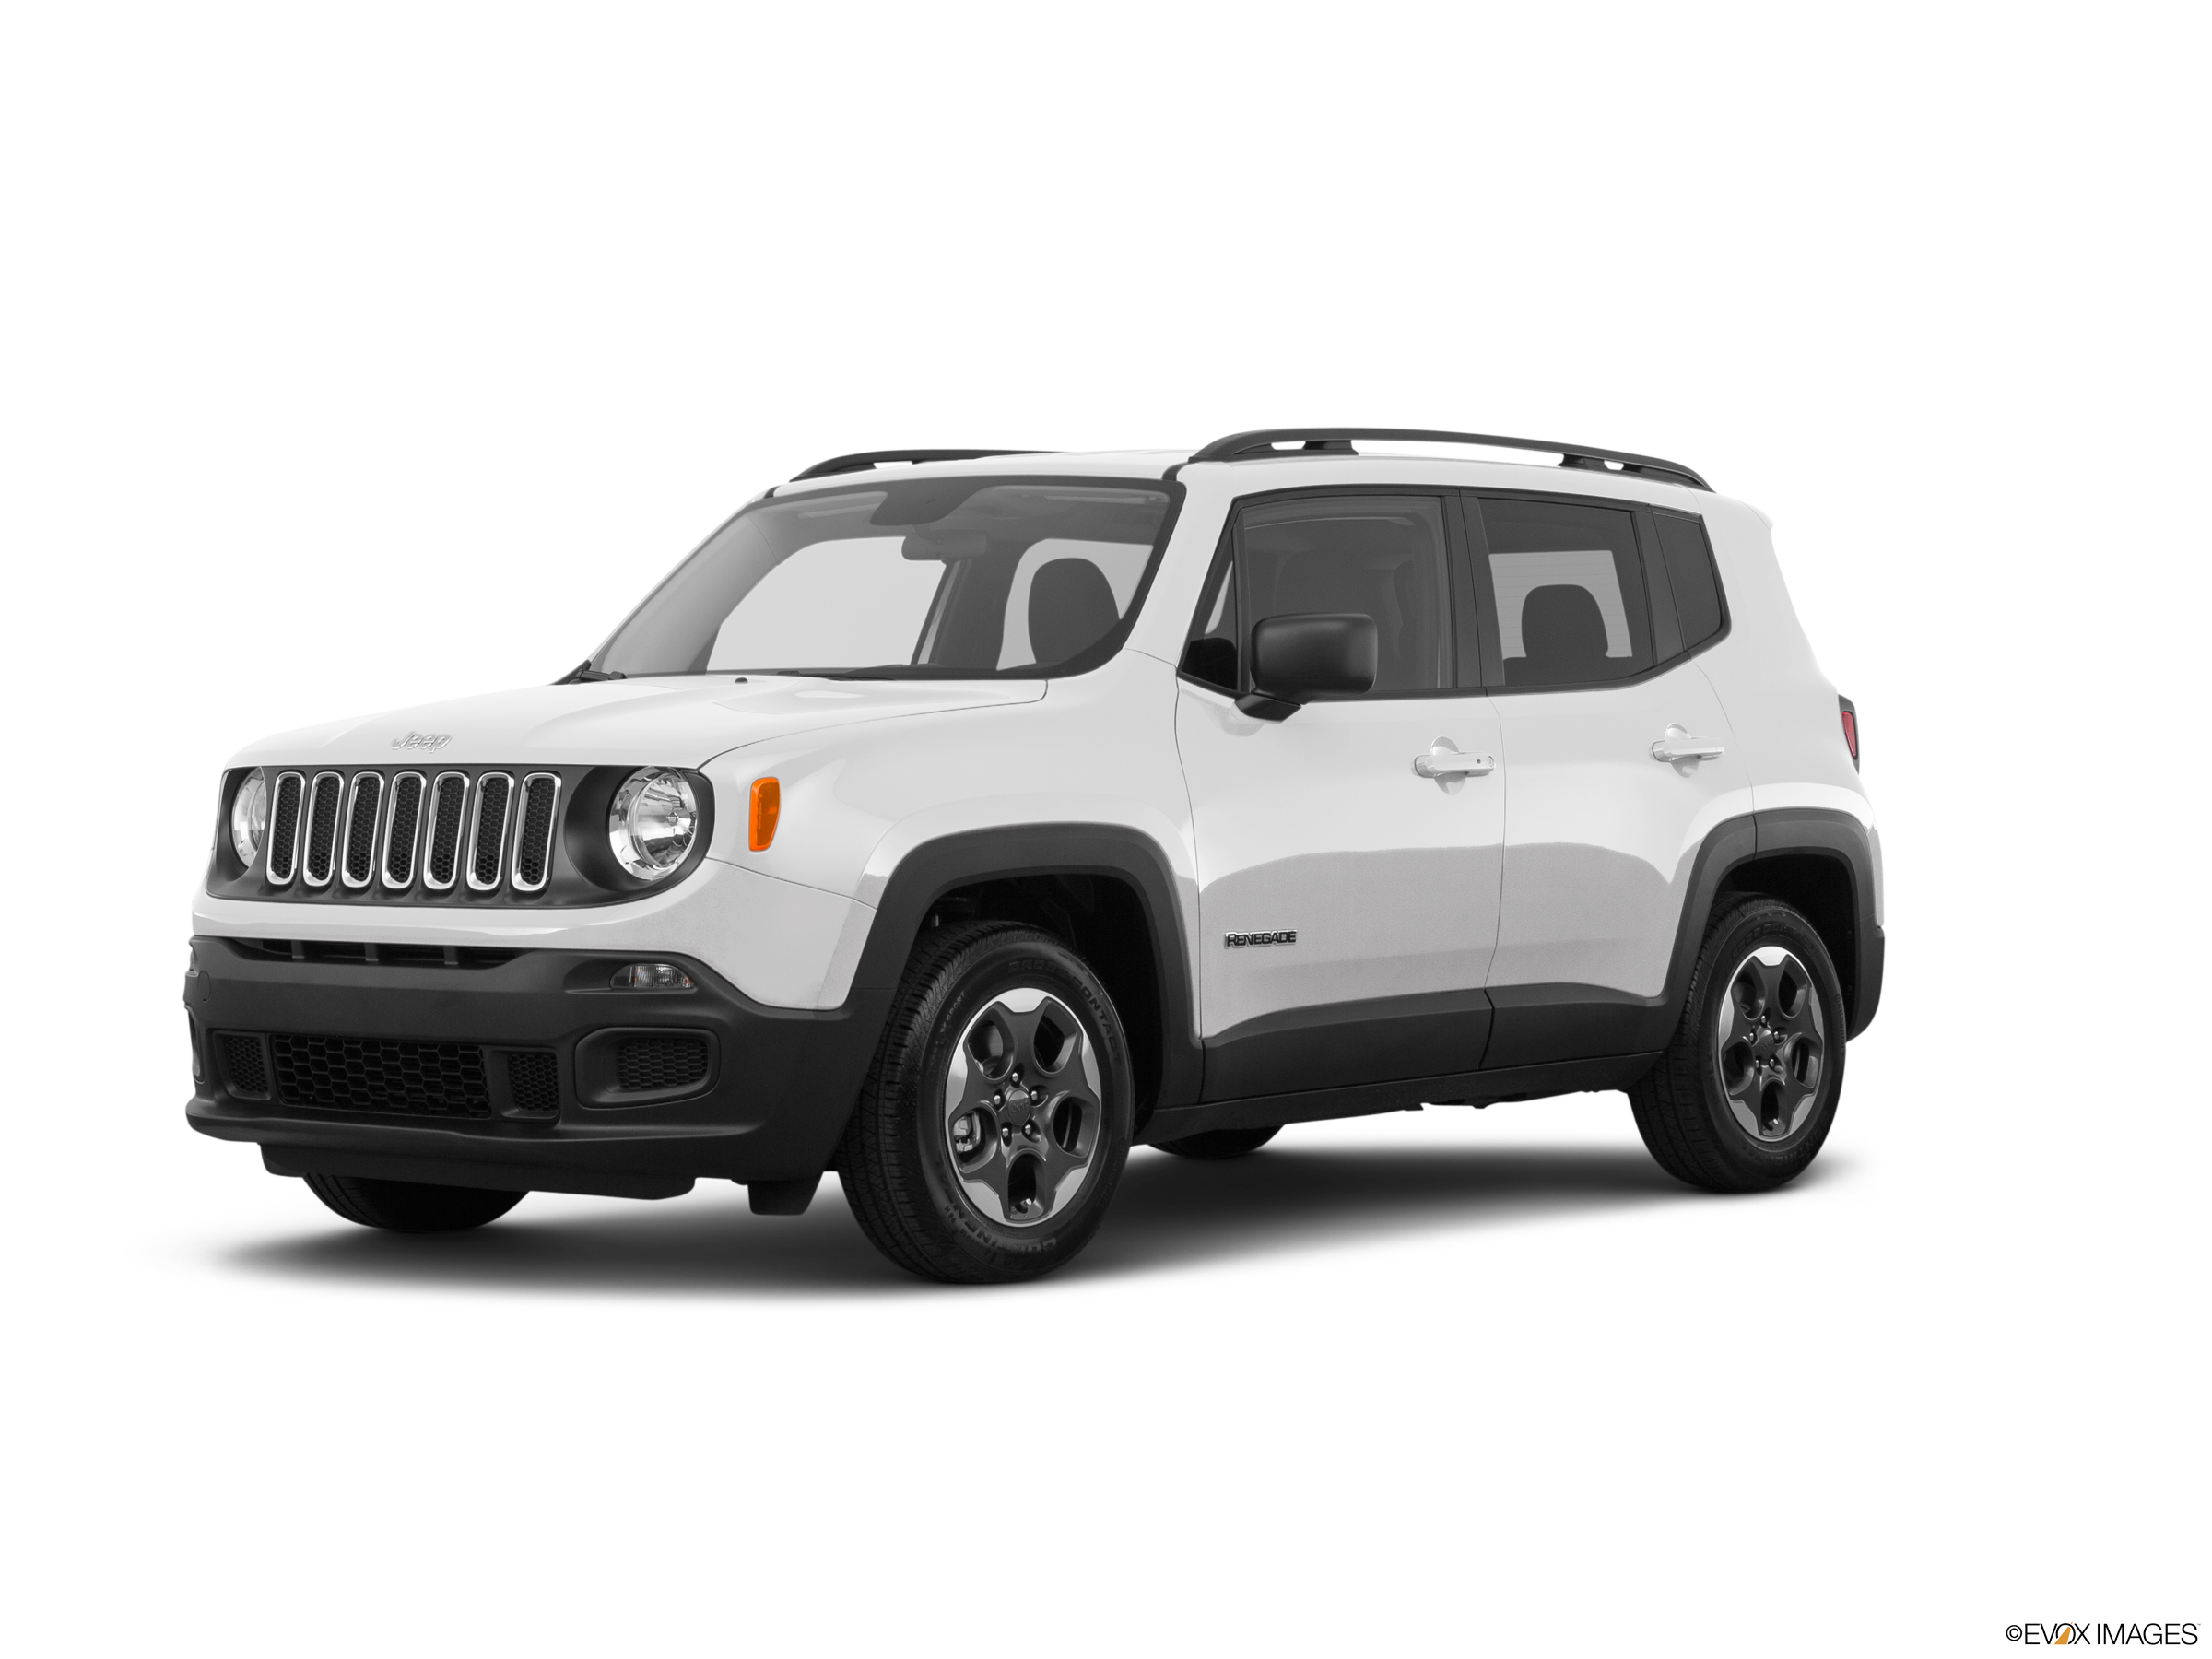 10 Best All-Wheel-Drive Vehicles Under $25,000 - 2018 Jeep Renegade